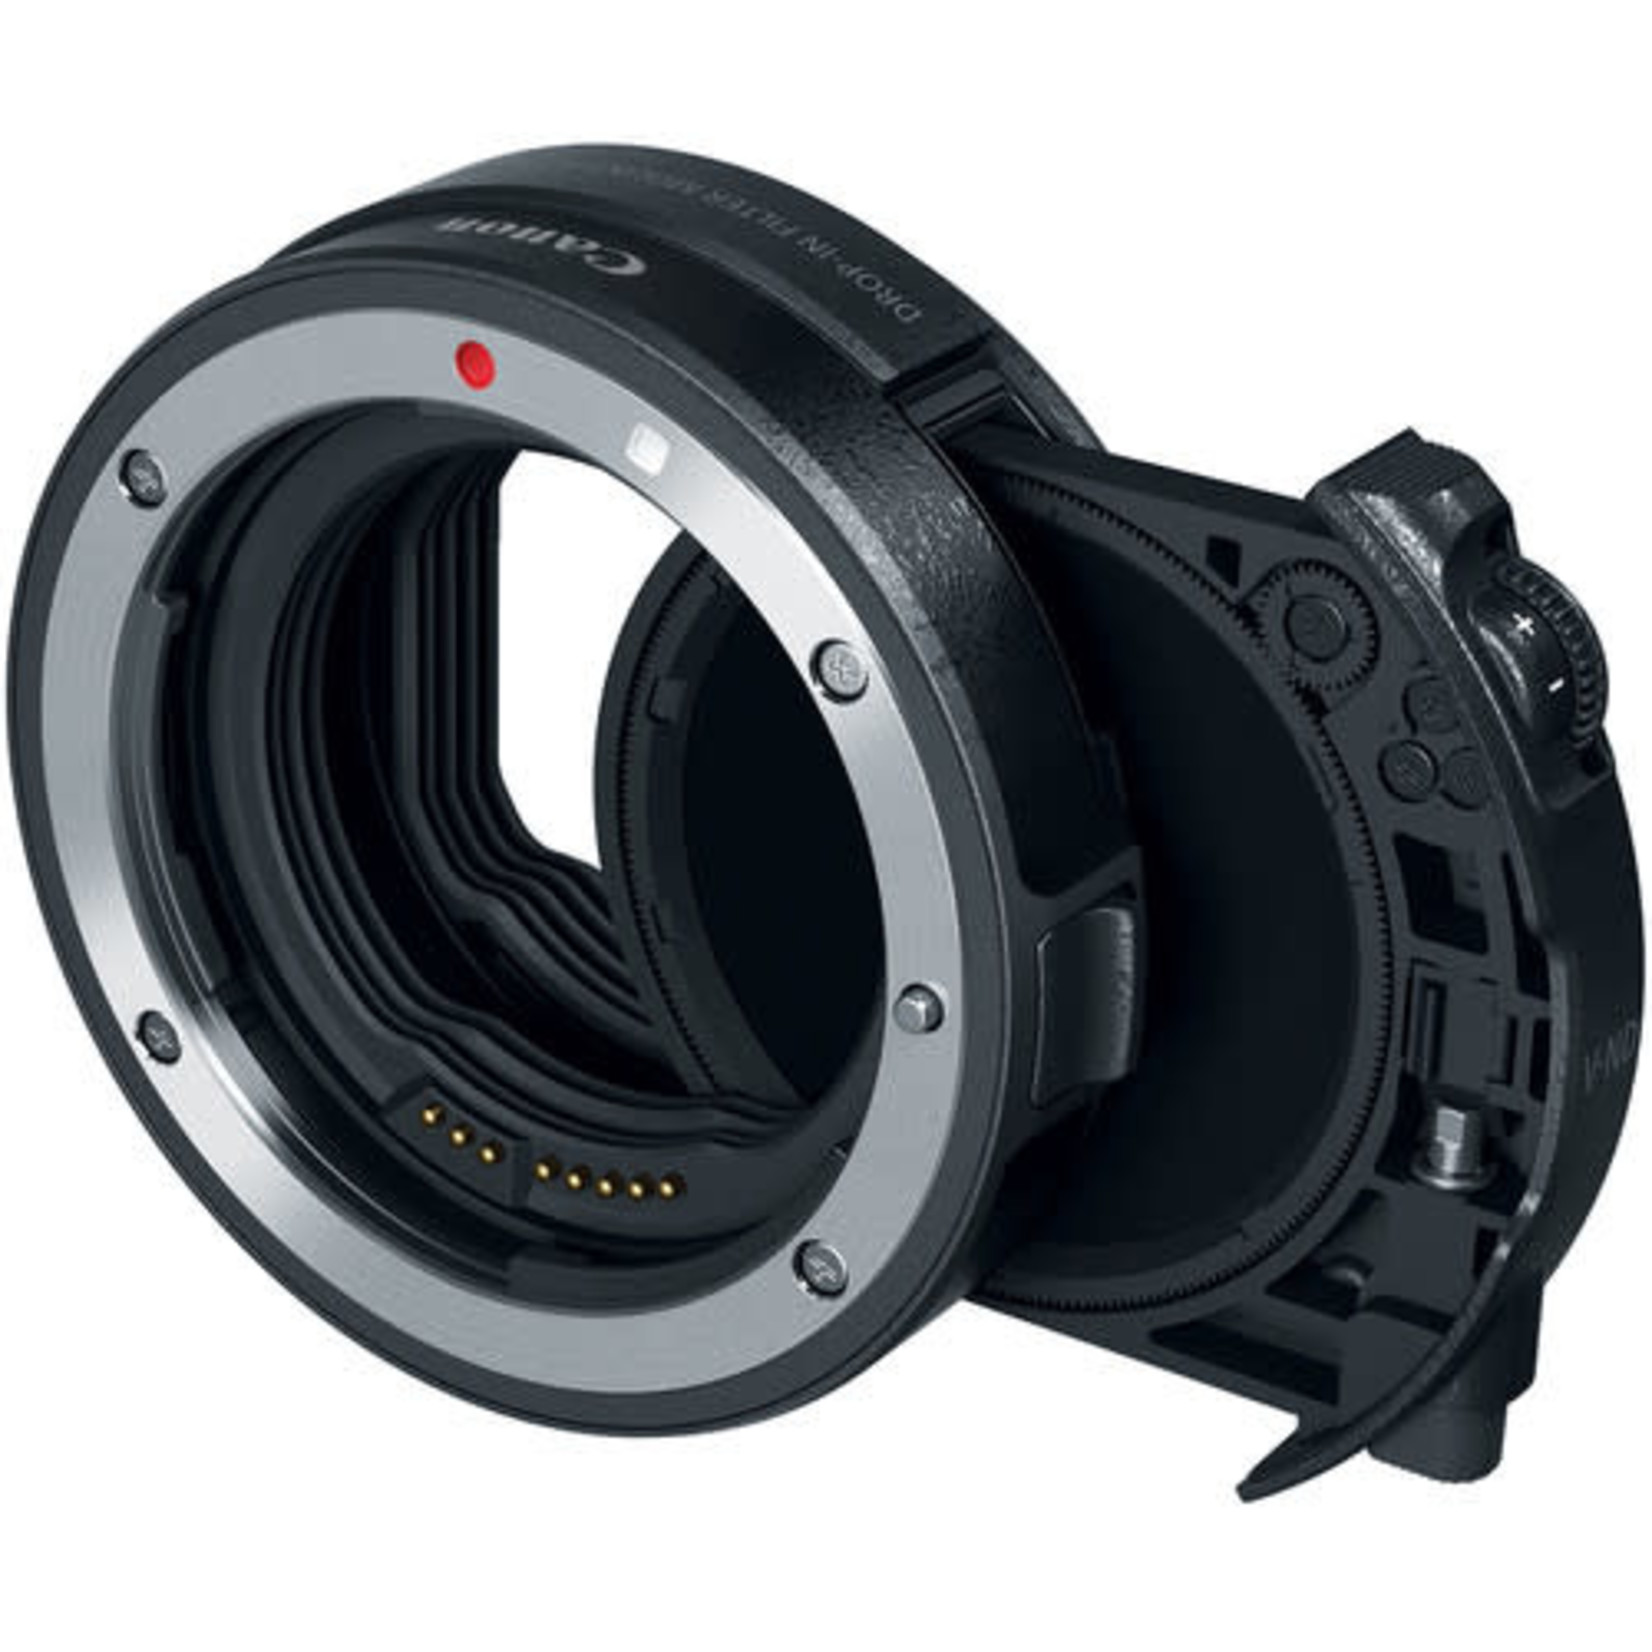 Canon Canon Drop-In Filter Mount Adapter EF-EOS R with Variable ND Filter